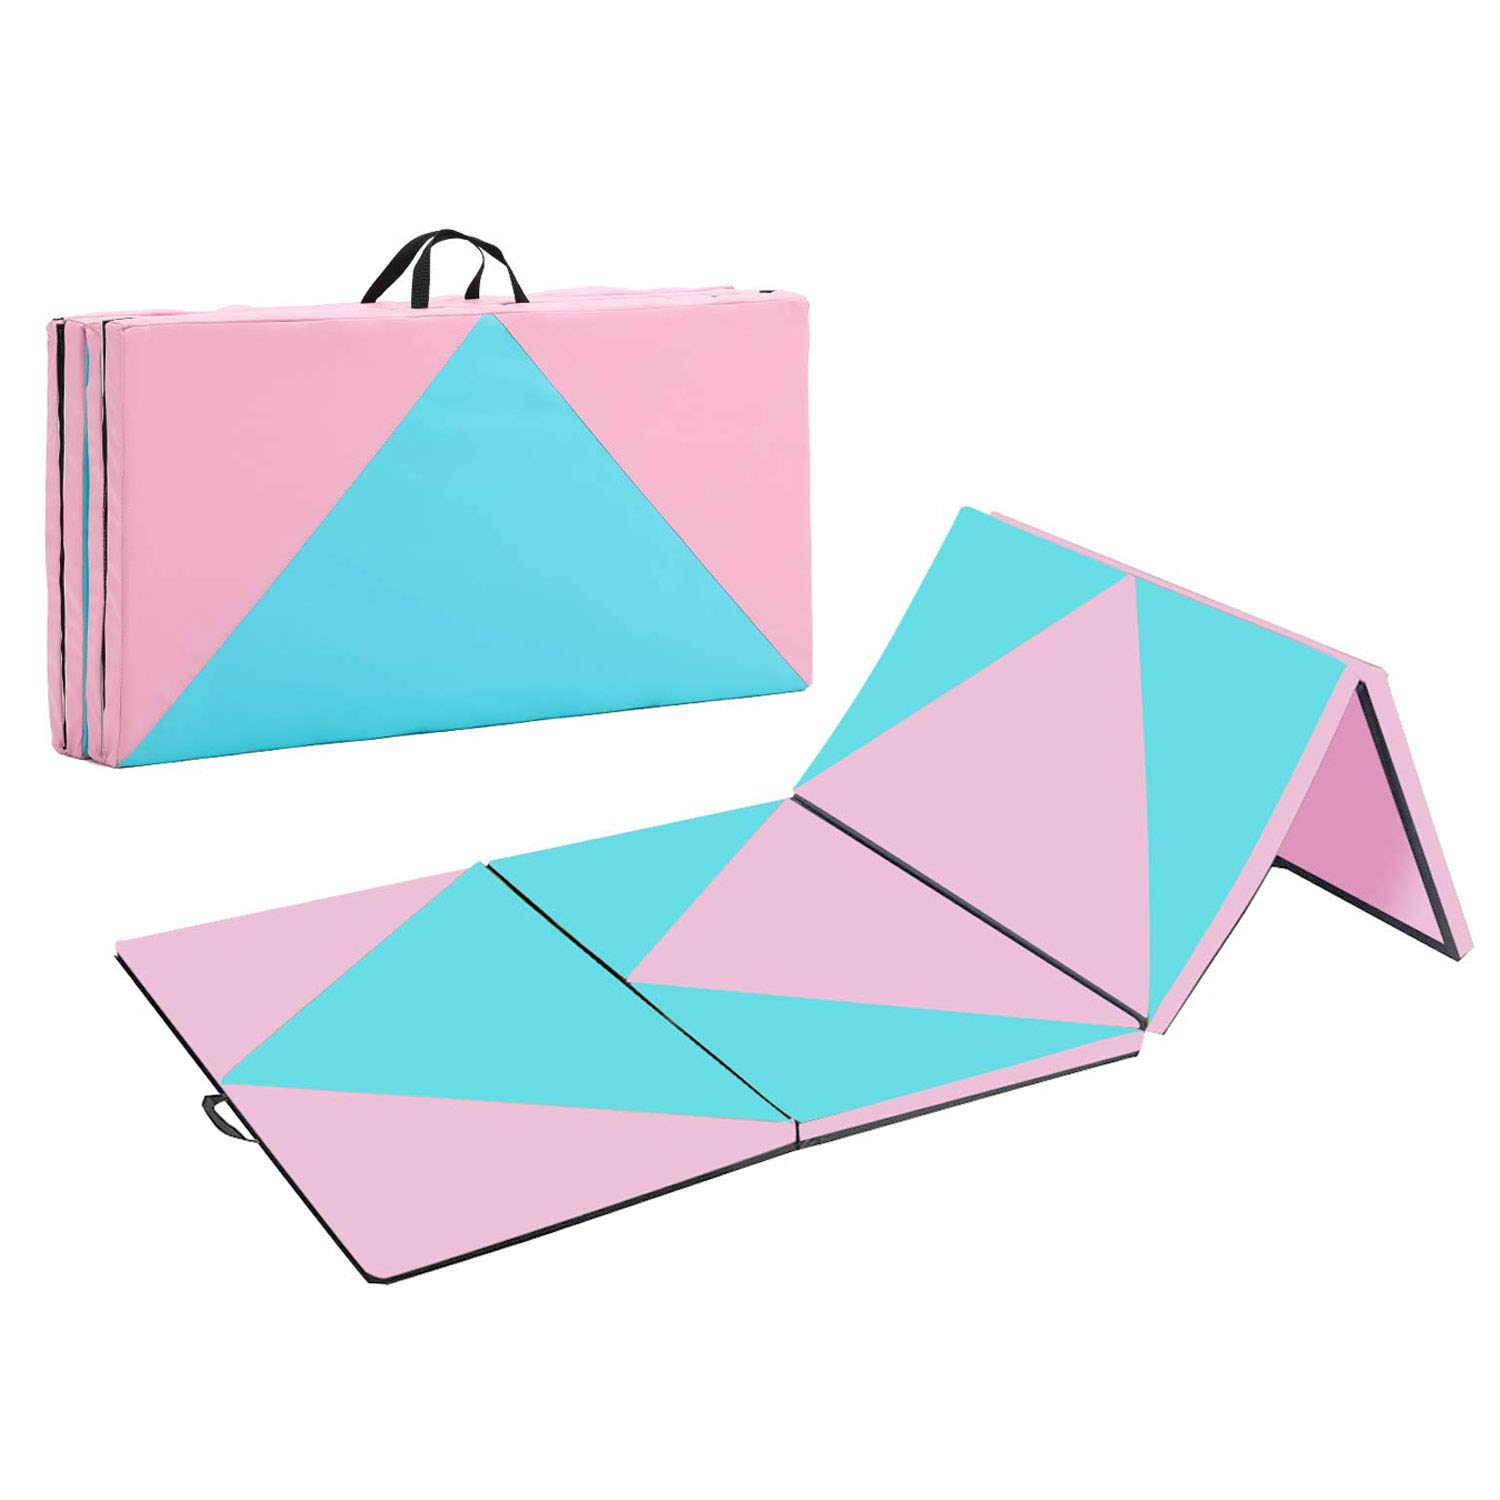 Max4out Folding Gymnastics Mat Exercise Tumbling Yoga Mats for Gym Fitness with Handle